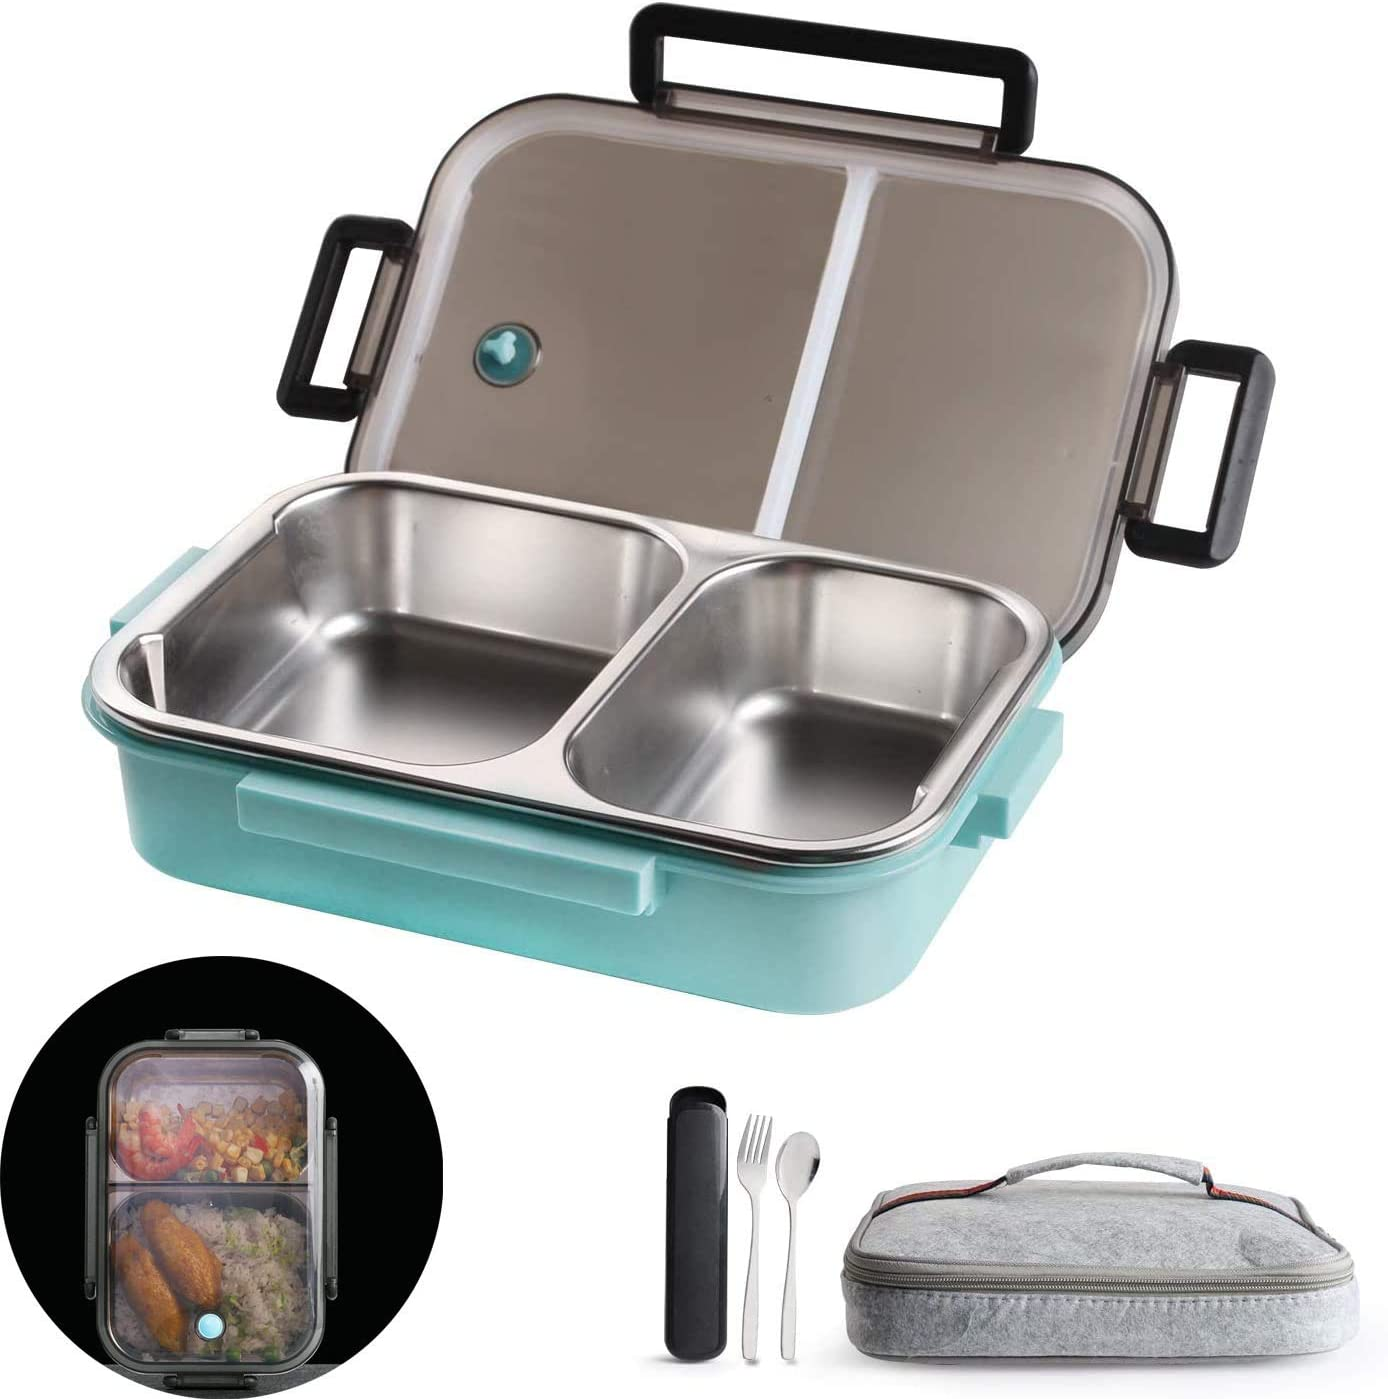 2 Compartments Bento Lunch box with Insulated Lunch Bag and Portable Utensils, Stainless Steel Food Lunch Containers for Kids Adults Men Women